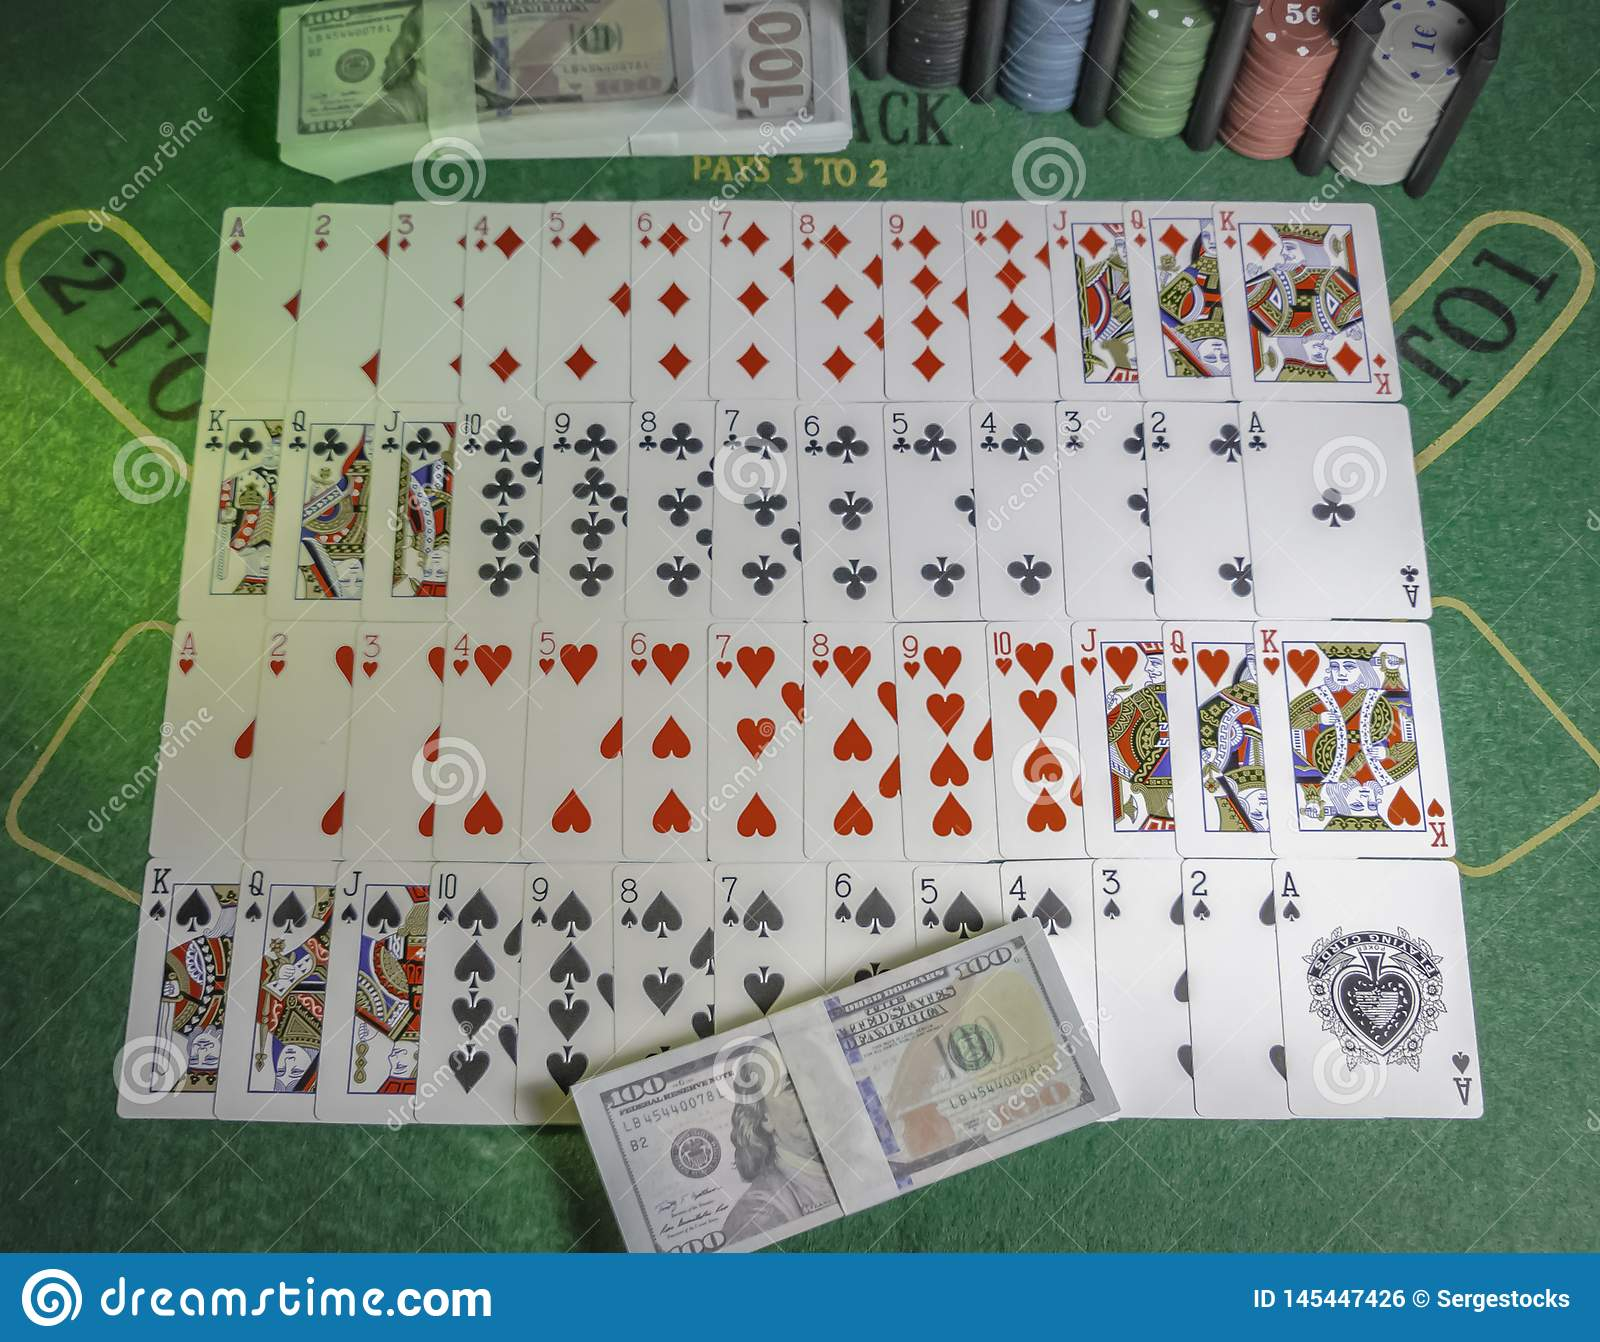 Deck of playing cards, Casino chips and pack of 100s of US dollars on the green table for Blackjack lighted with party lights